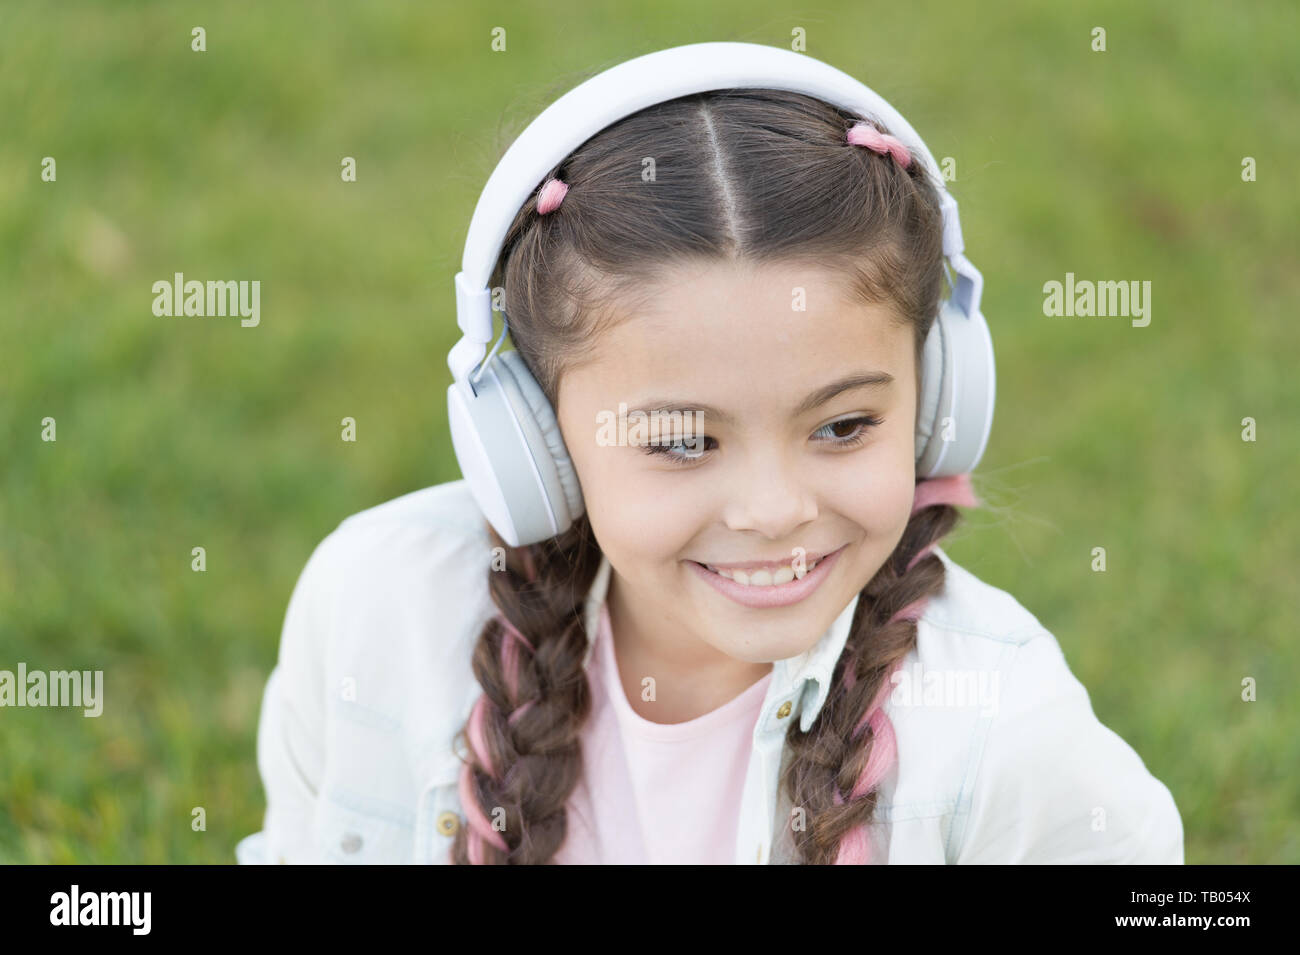 Audio tour headphones gadget. Free style of travelling. Exciting journeys through cities and museums. City guide and audio tour. Girl little tourist kid using audio guide mobile application. - Stock Image